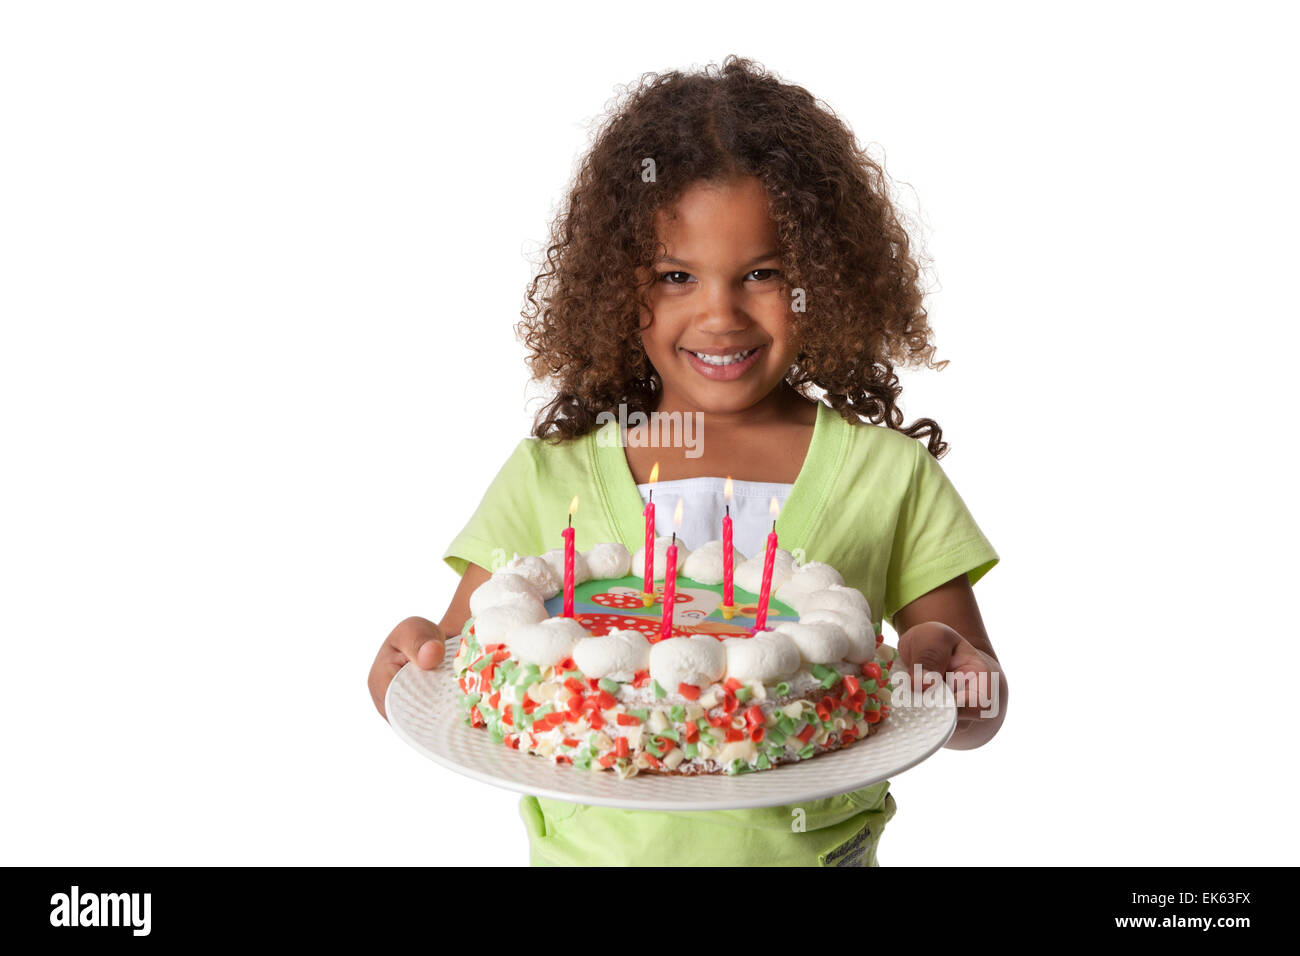 Wondrous Five Year Old Girl With A Birthday Cake With 5 Candles On White Funny Birthday Cards Online Fluifree Goldxyz